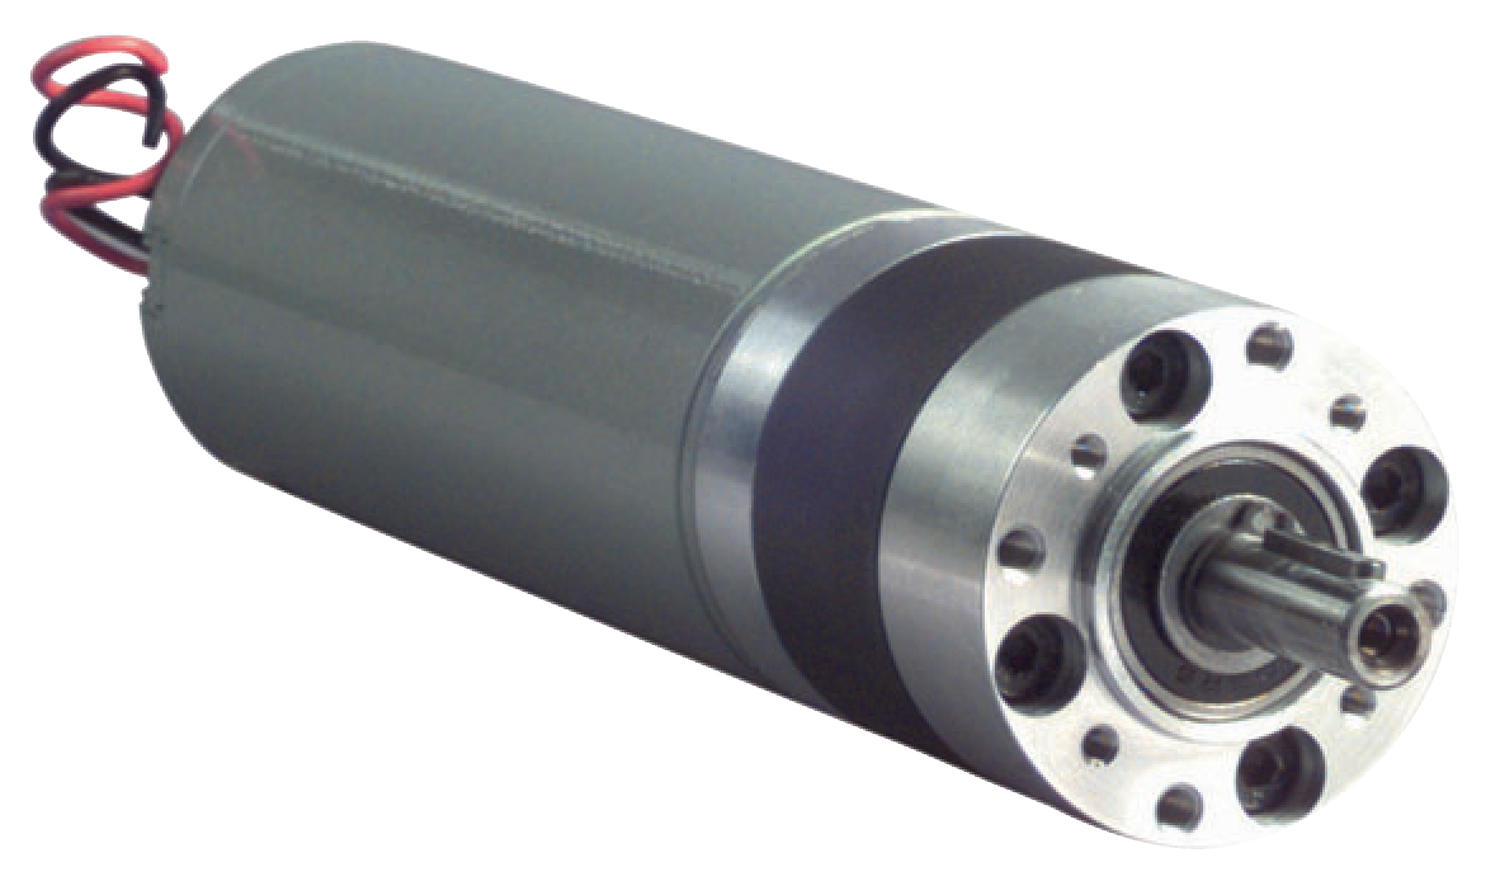 808593xx DC motor with planetary gearbox - Industrial DC Series